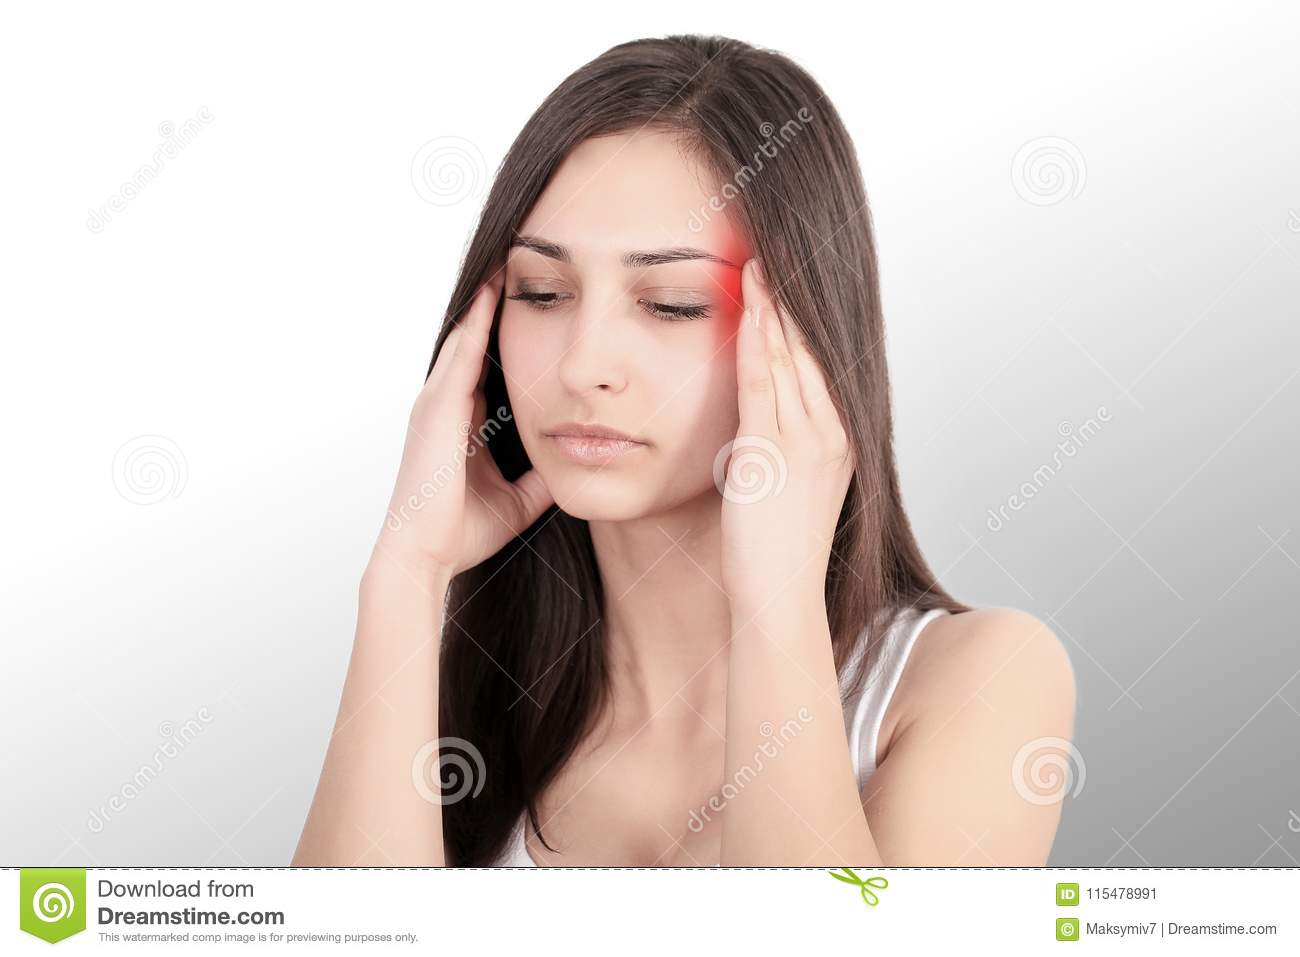 images Fight Back Against Headache Stress